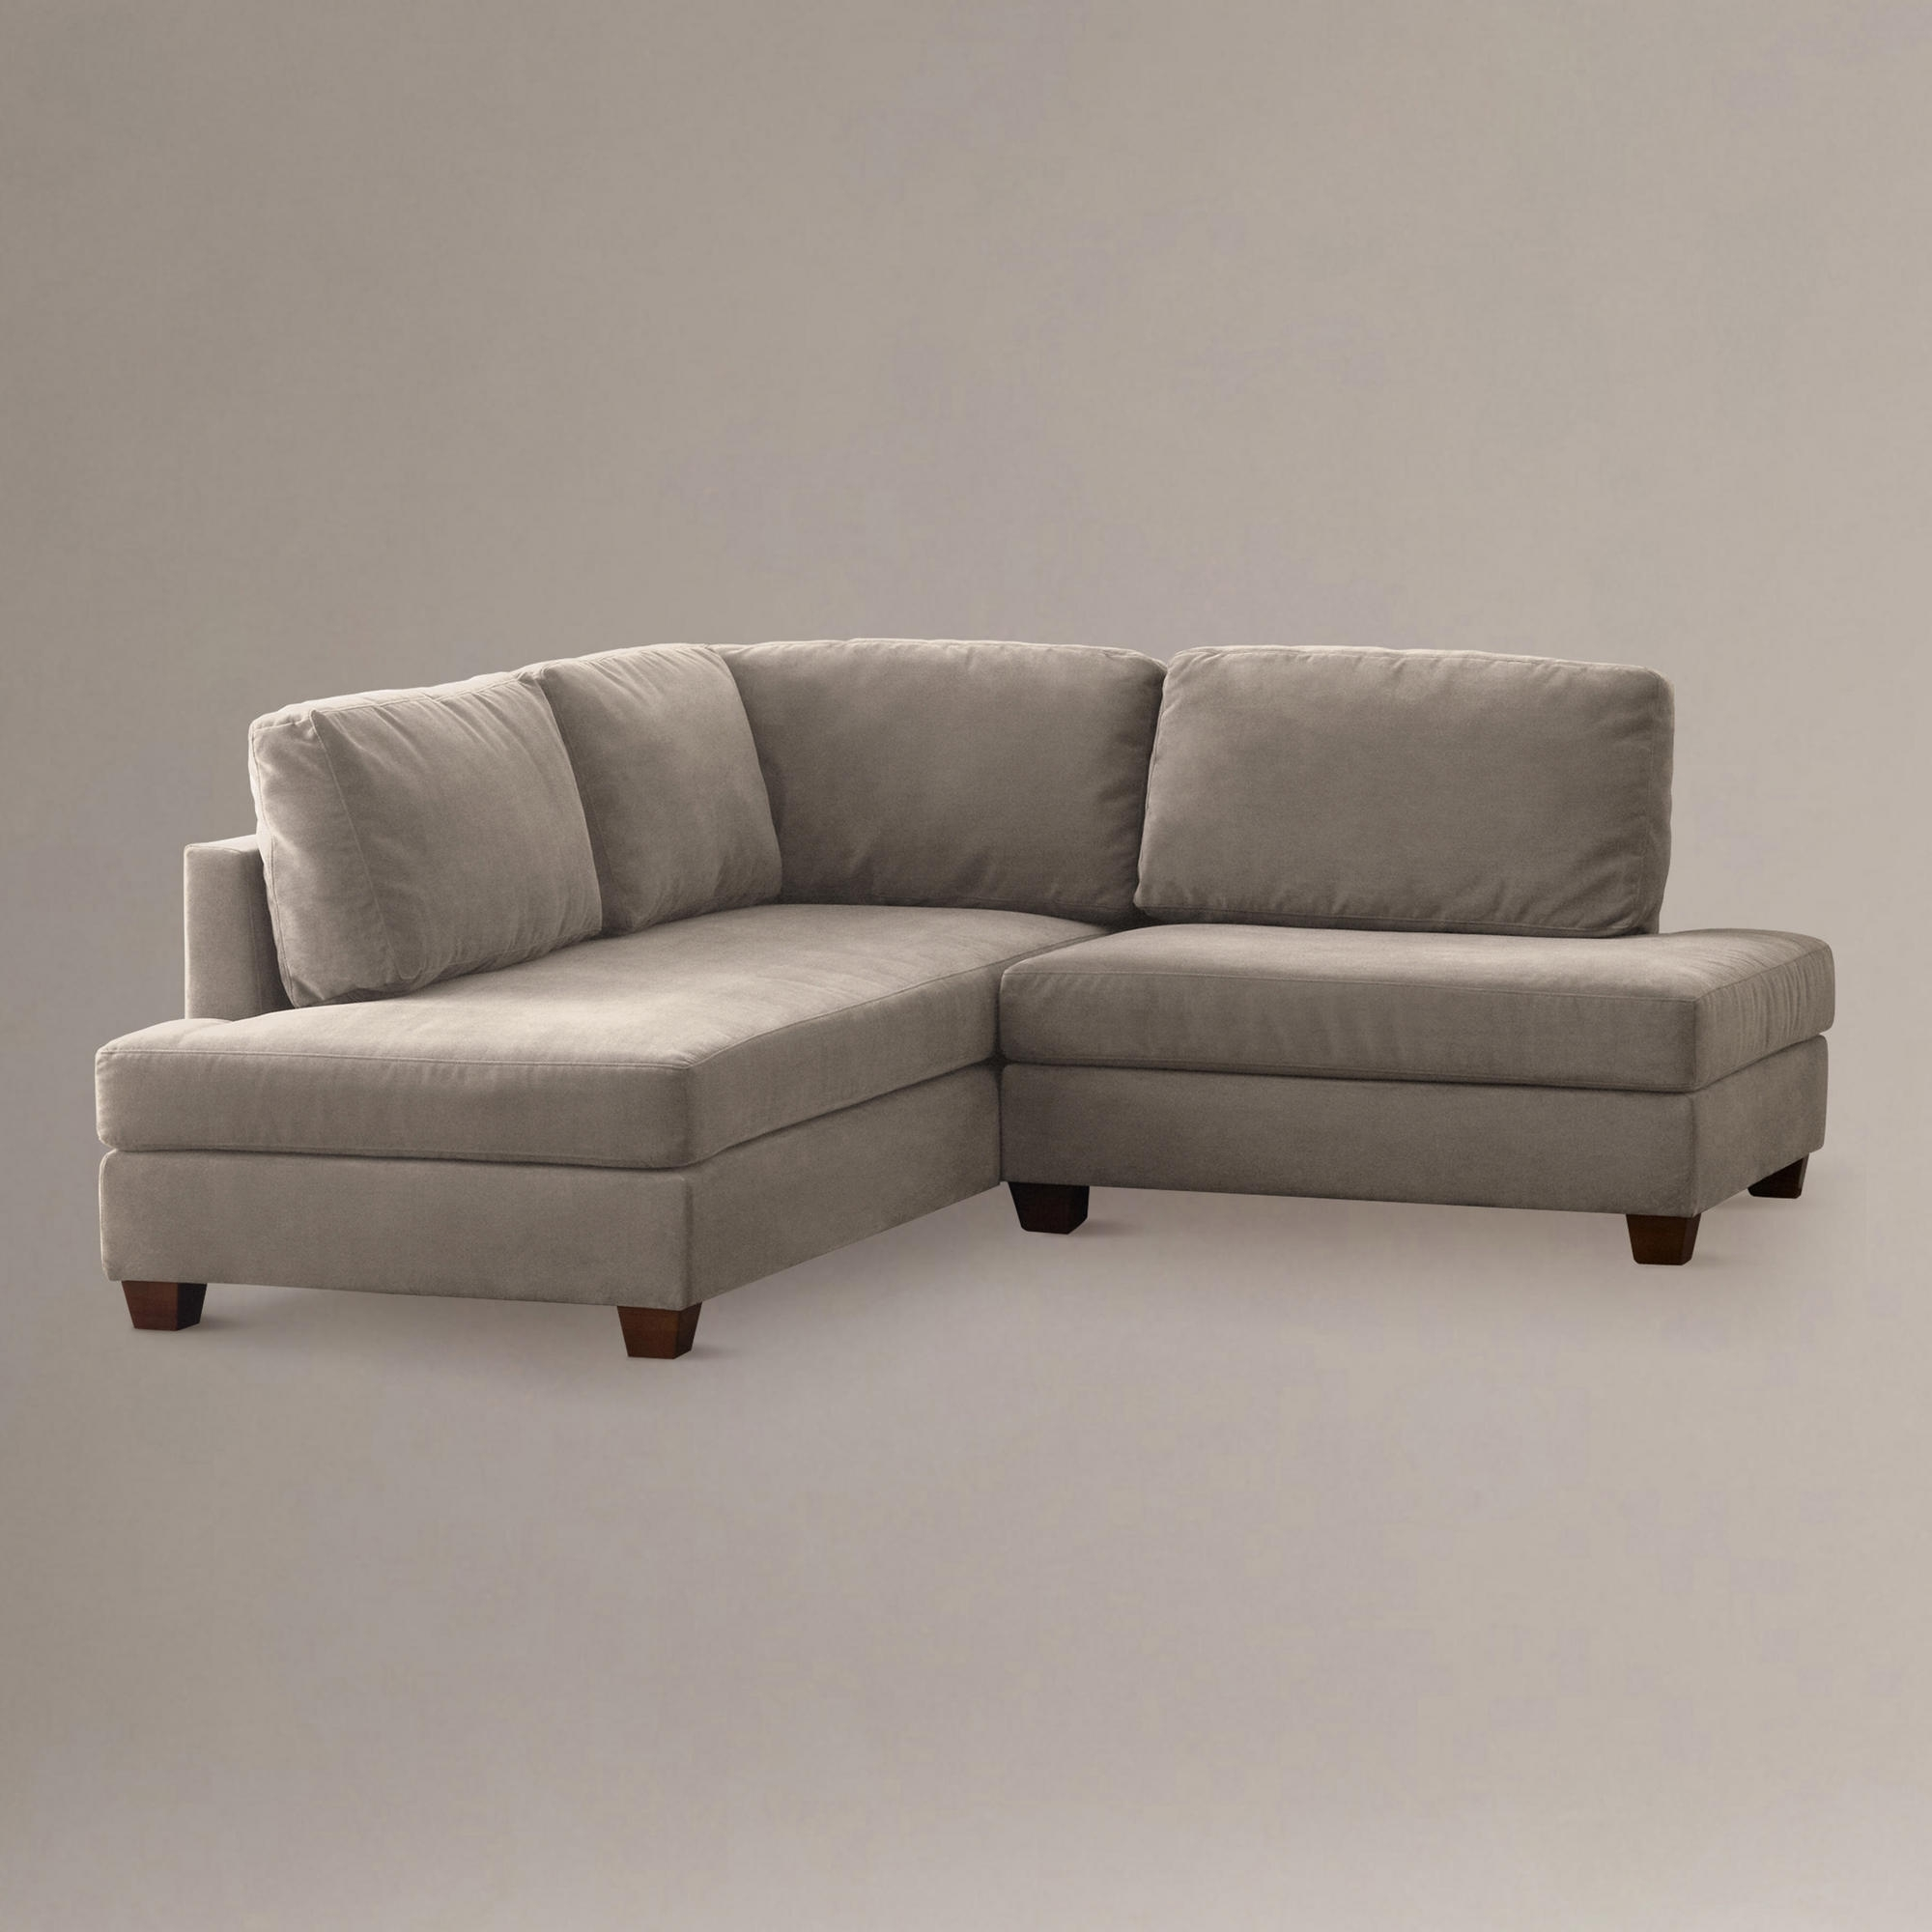 Preferred Small Loveseats With Chaise For Small Loveseat With Chaise Small Sectional Sofa Ikea Loveseat (View 5 of 15)